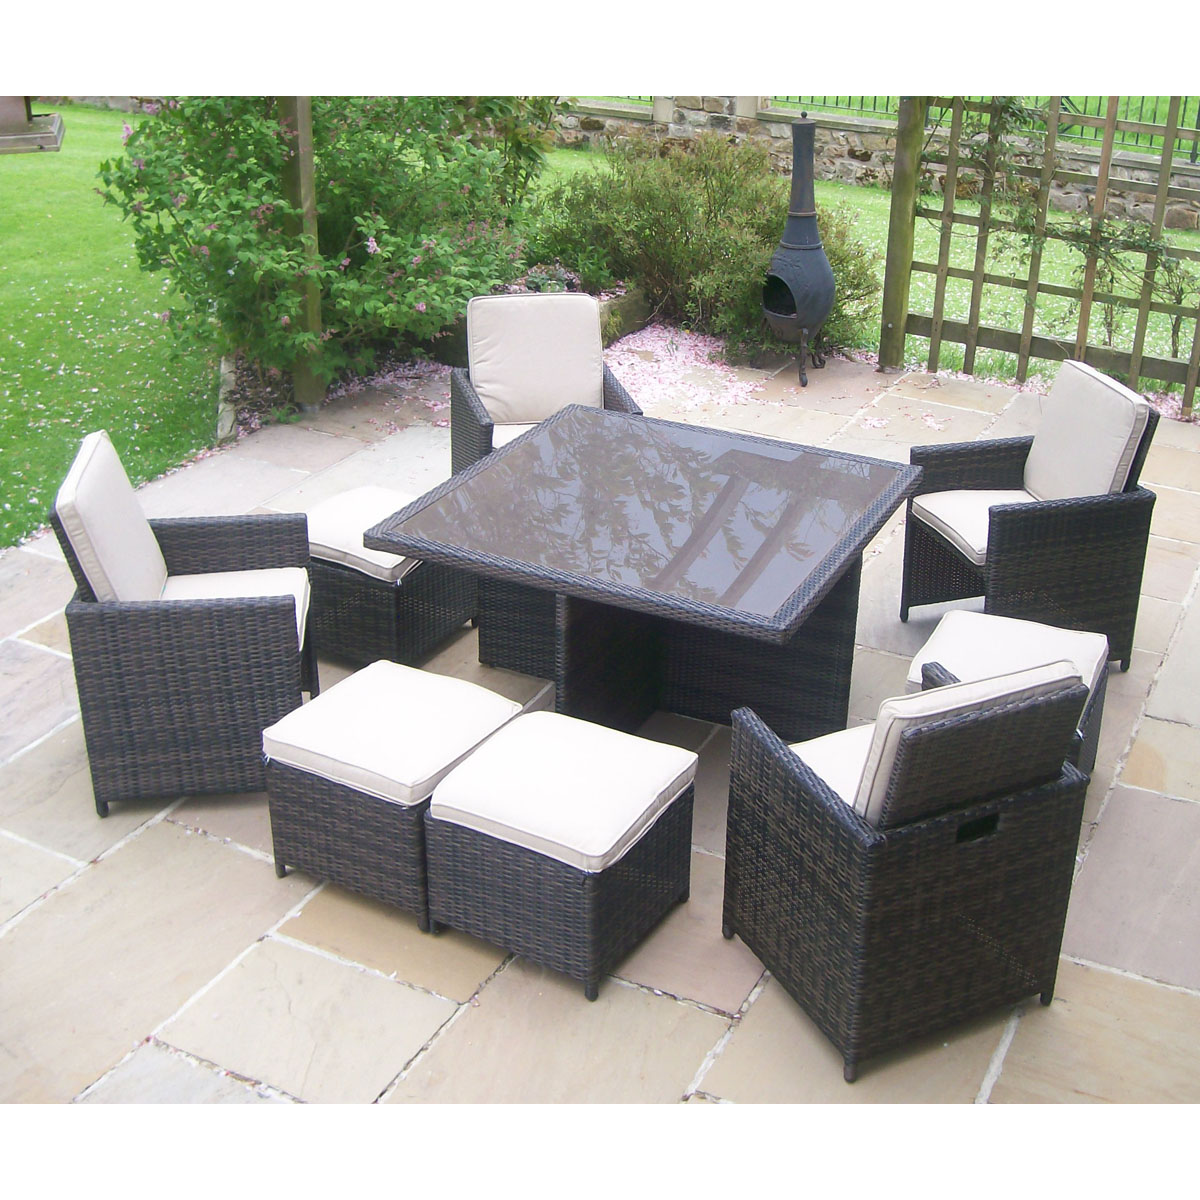 Rattan wicker garden furniture table 4 chair patio set ebay for Porch table and chair set